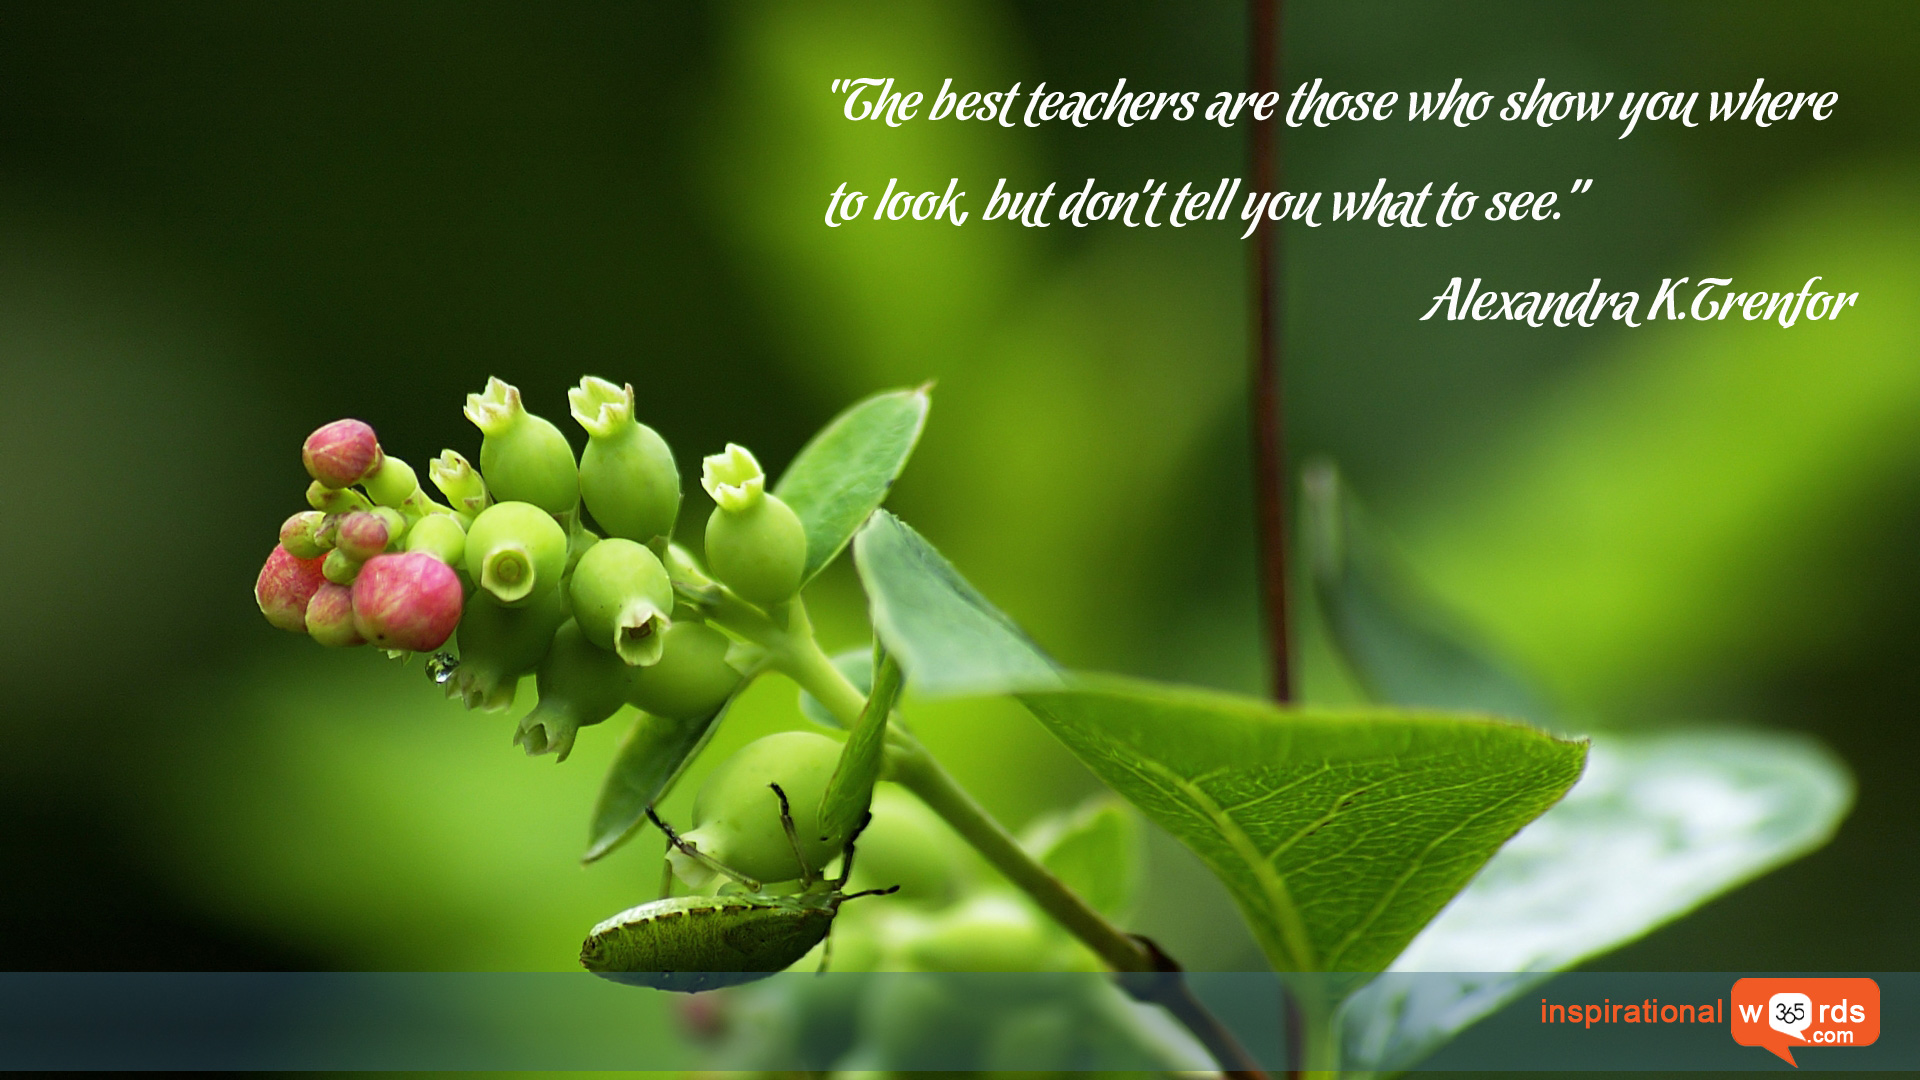 Inspirational Wallpaper Quote by Alexandra K.Trenfor